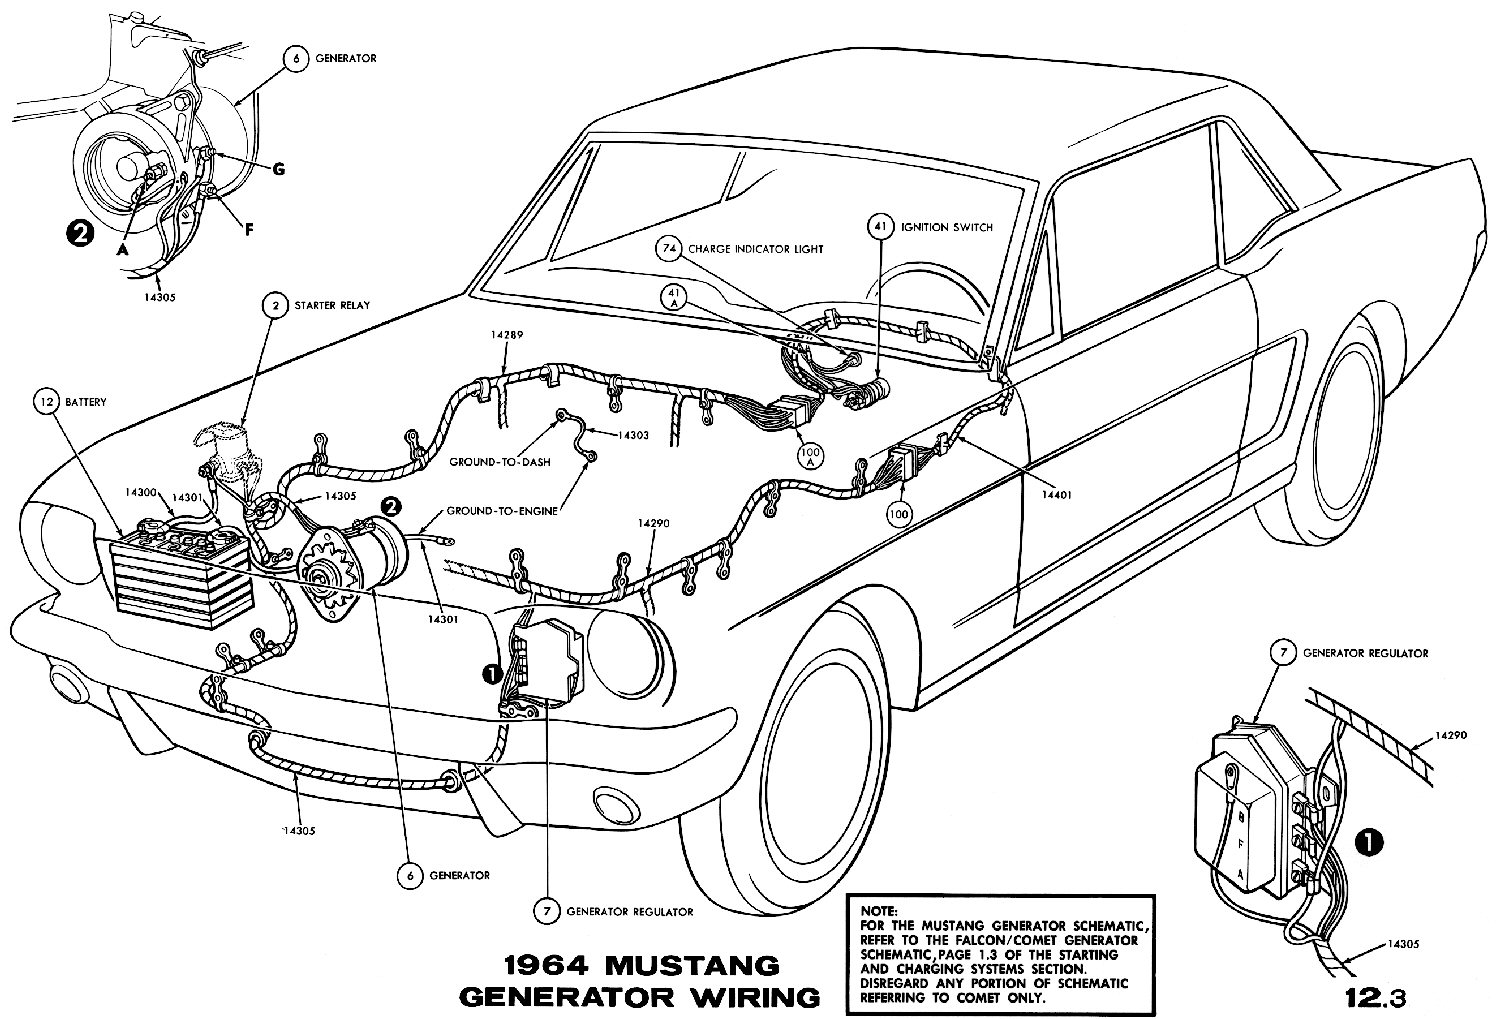 1964 Mustang Wiring Diagrams Average Joe Restoration 1950 Chevy Generator Diagram Sm1964f Pictorial Or Schematic